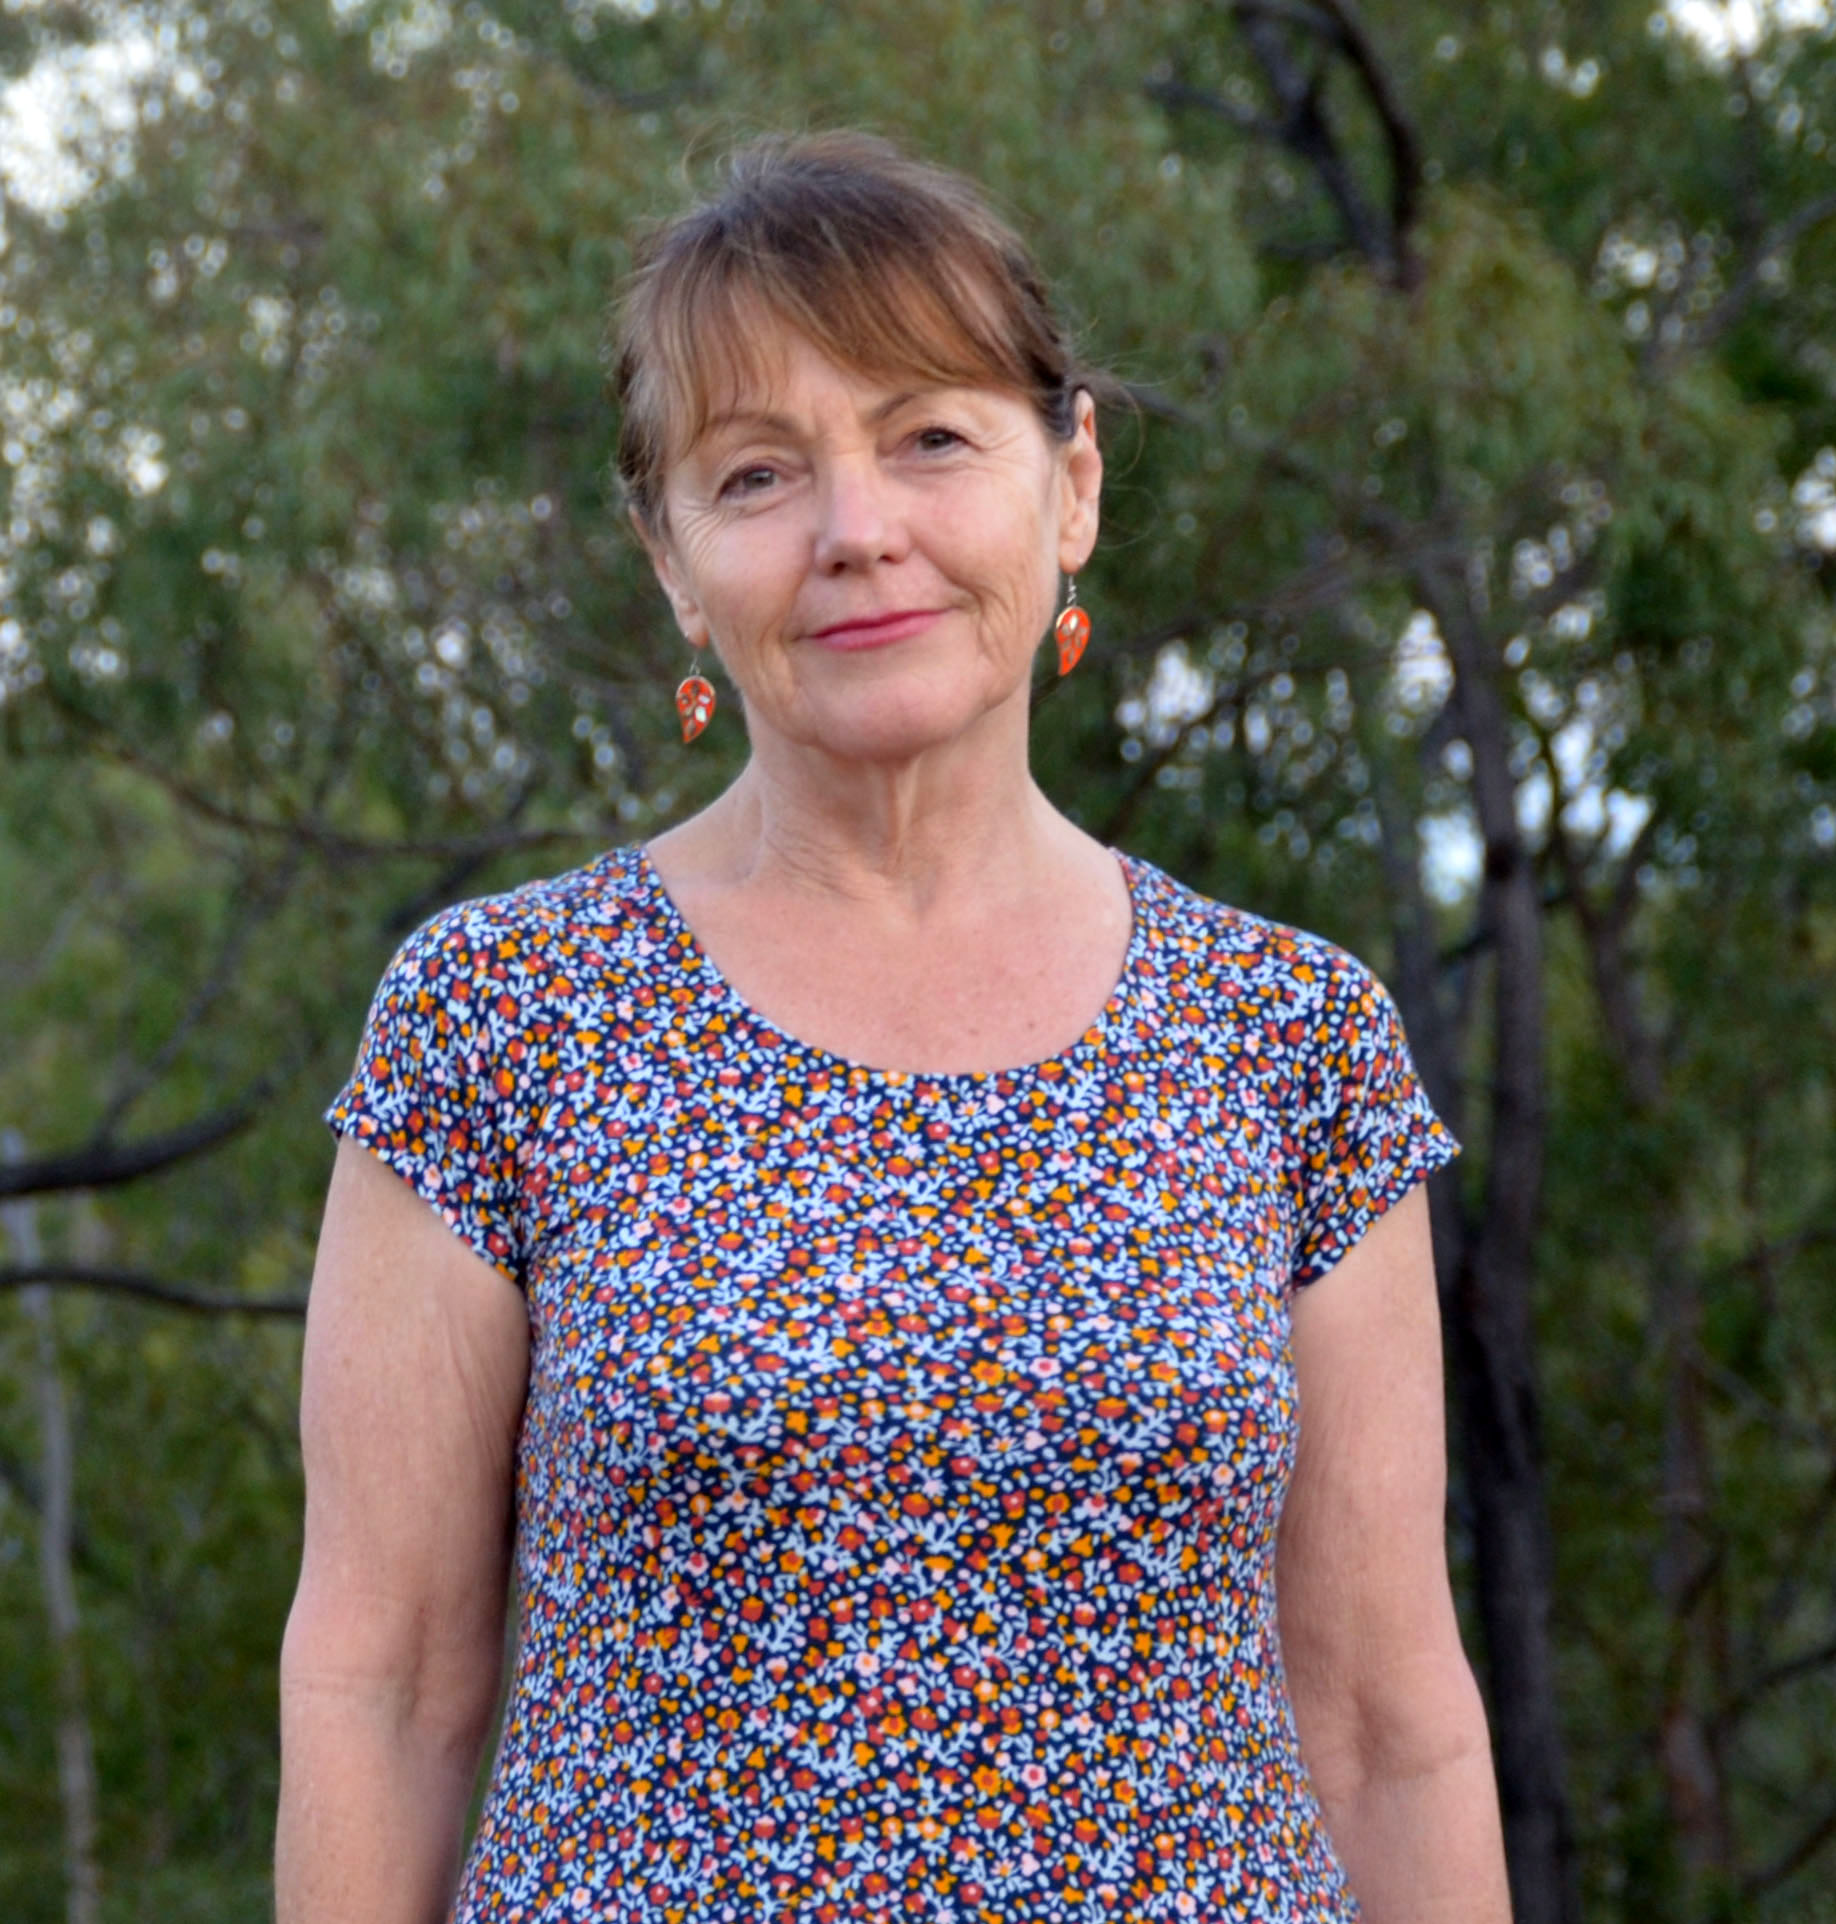 Deborah Moseley, candidate for Buderim